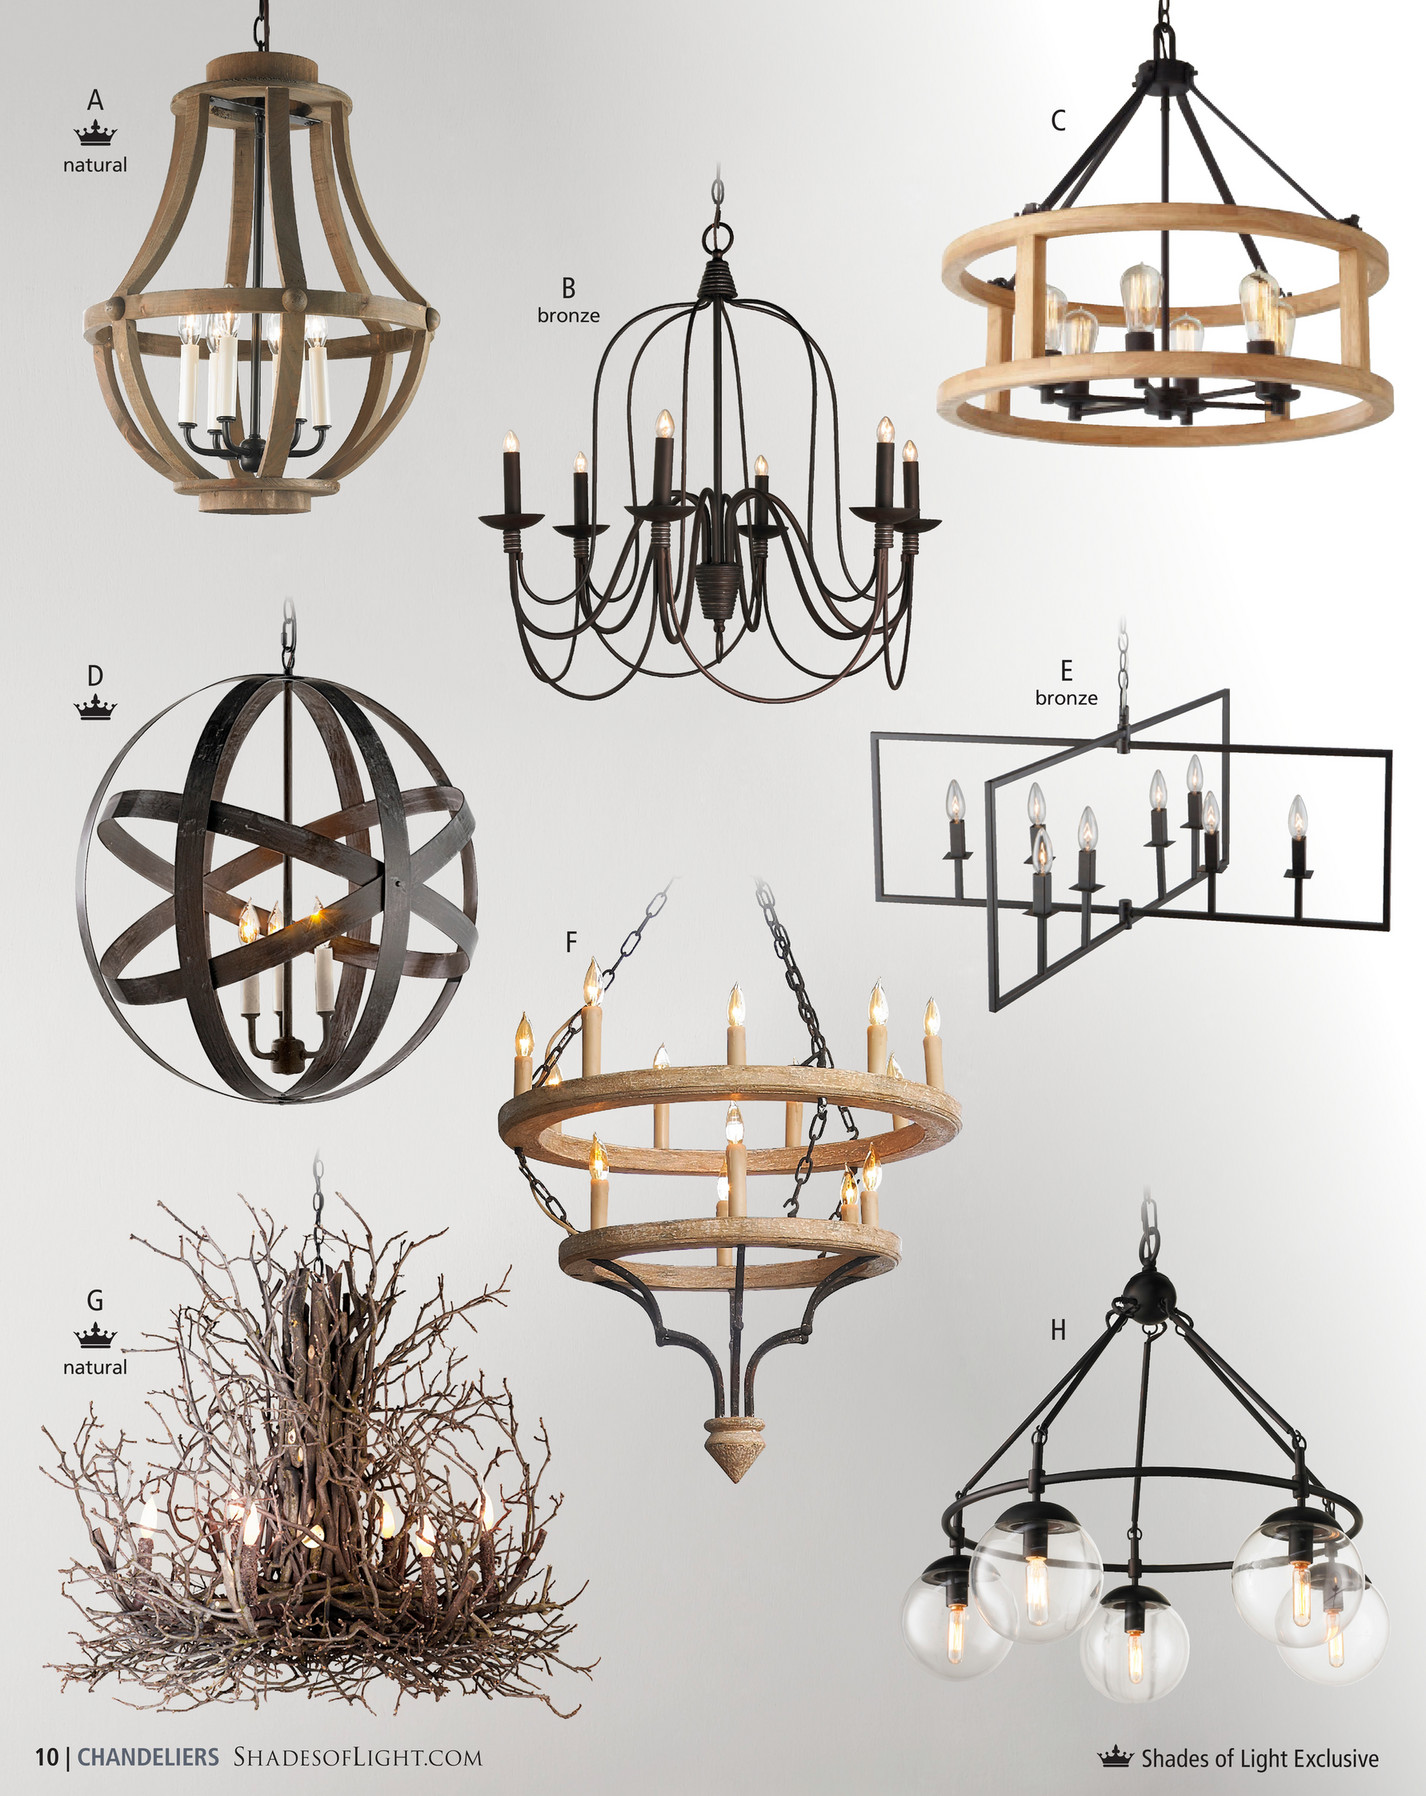 Shades of light modern farmhouse 2017 multi glass orb chandelier a c natural b bronze e d bronze f g h natural 10 chandeliers shadesoflight aloadofball Images